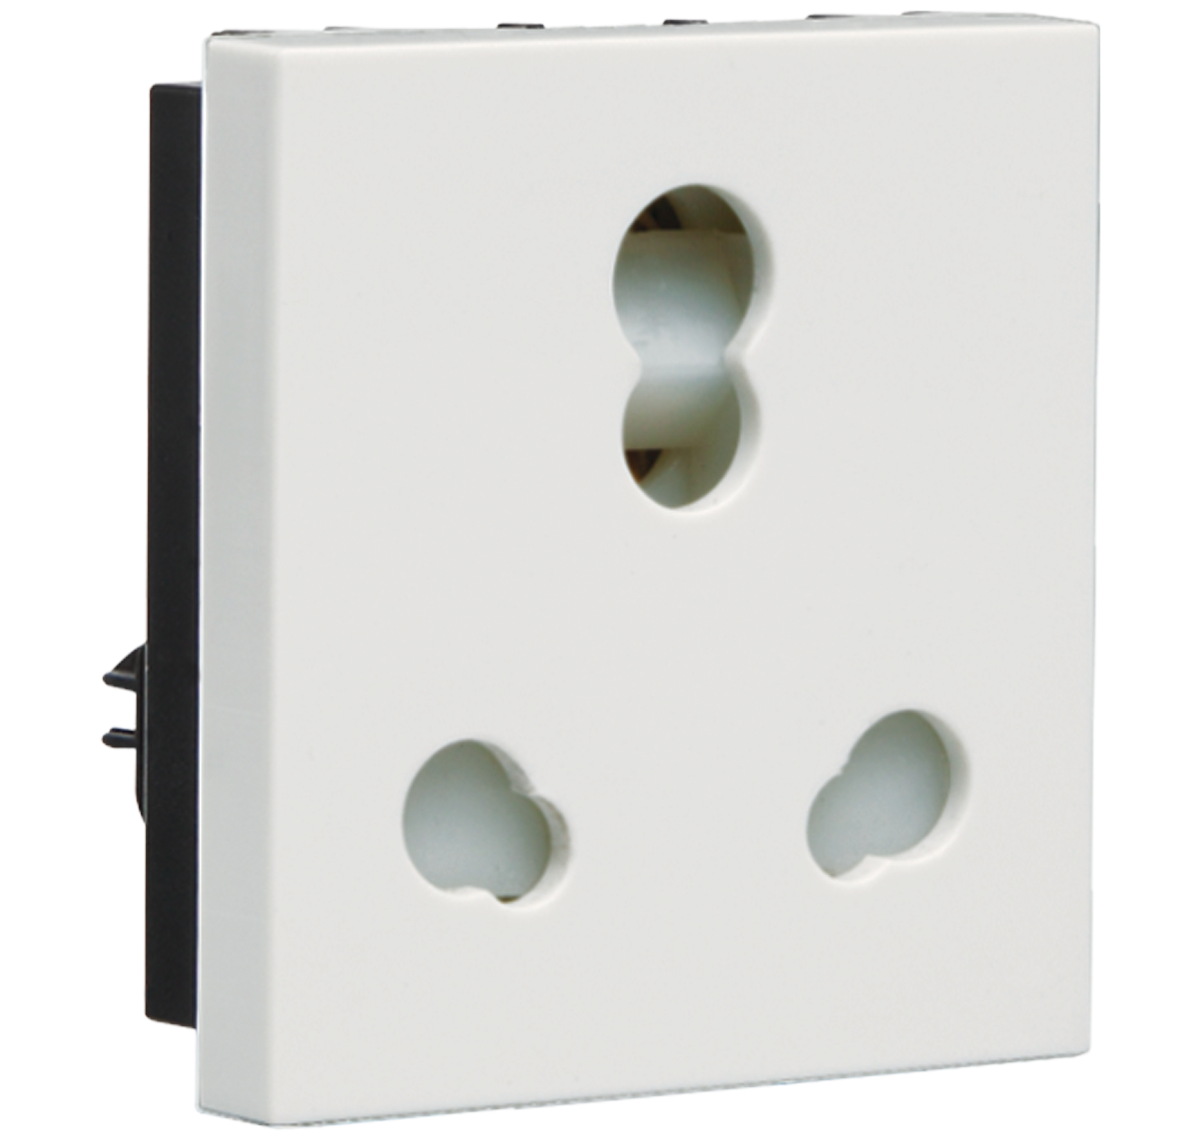 Crabtree - 6 A - 16 A  3 Pin Combined Shutter Socket